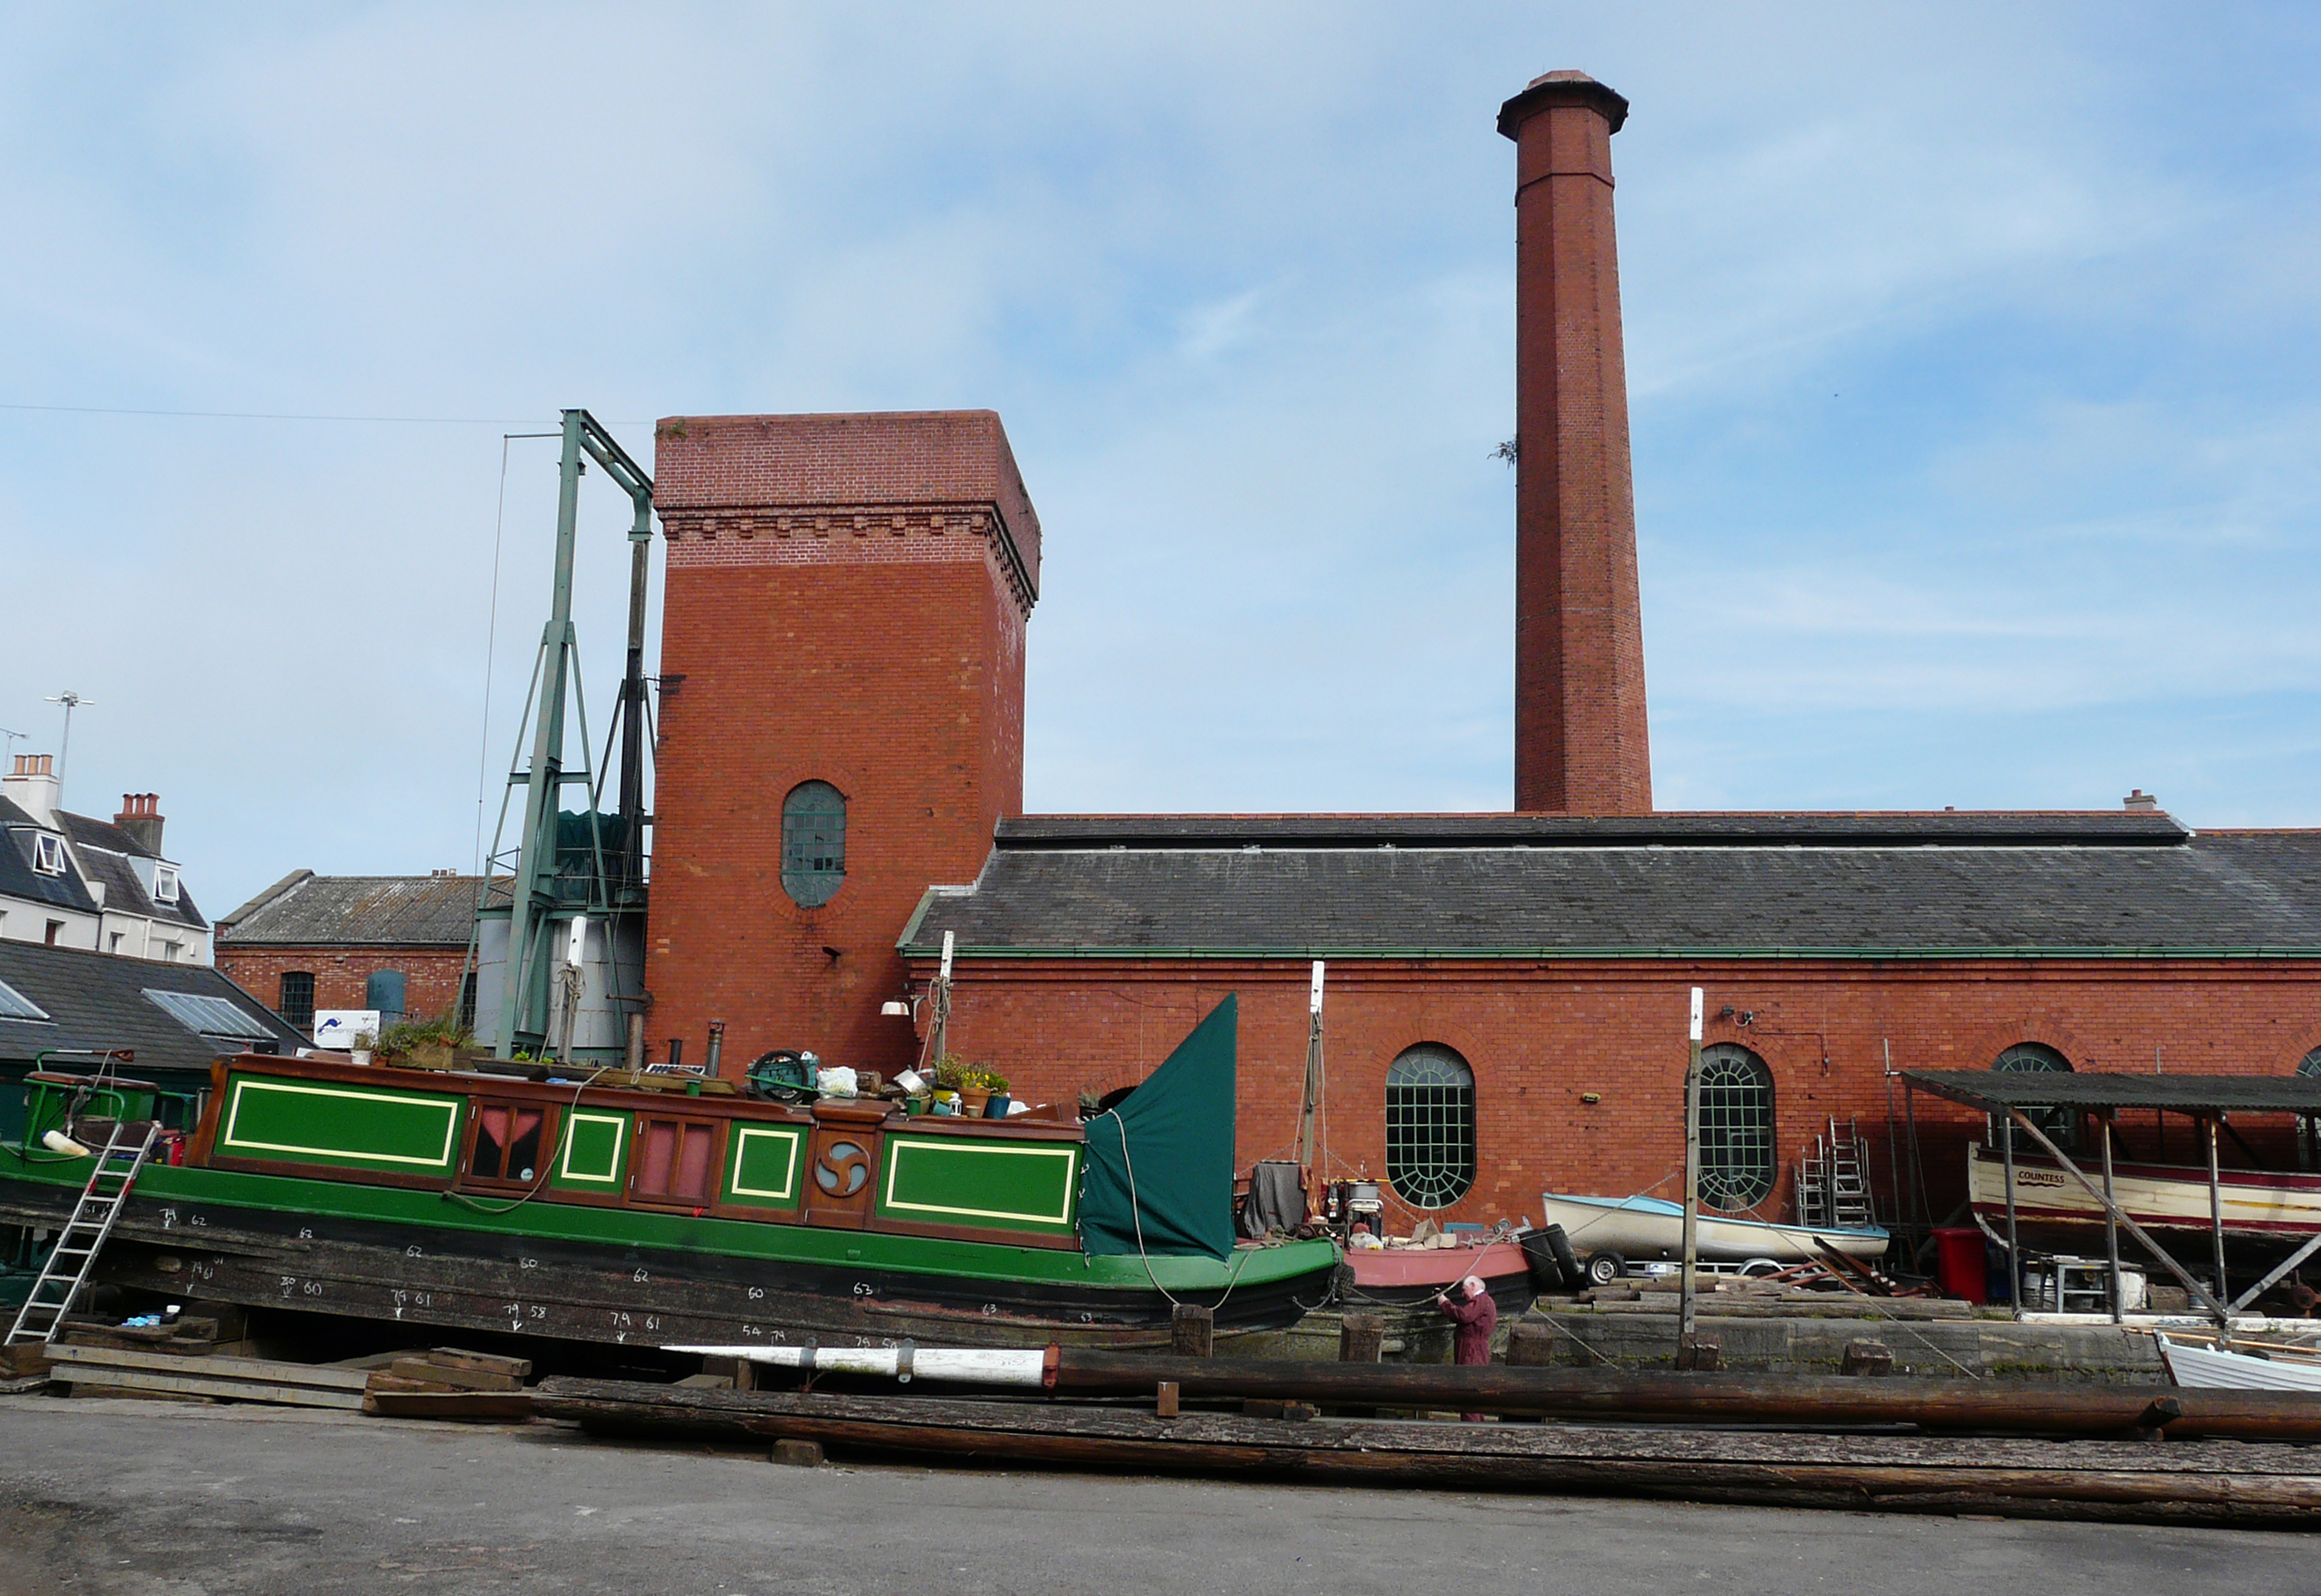 The hydraulic accumulator and engine house at Underfall Yard, with a narrow boat on the patent slip, 2014.